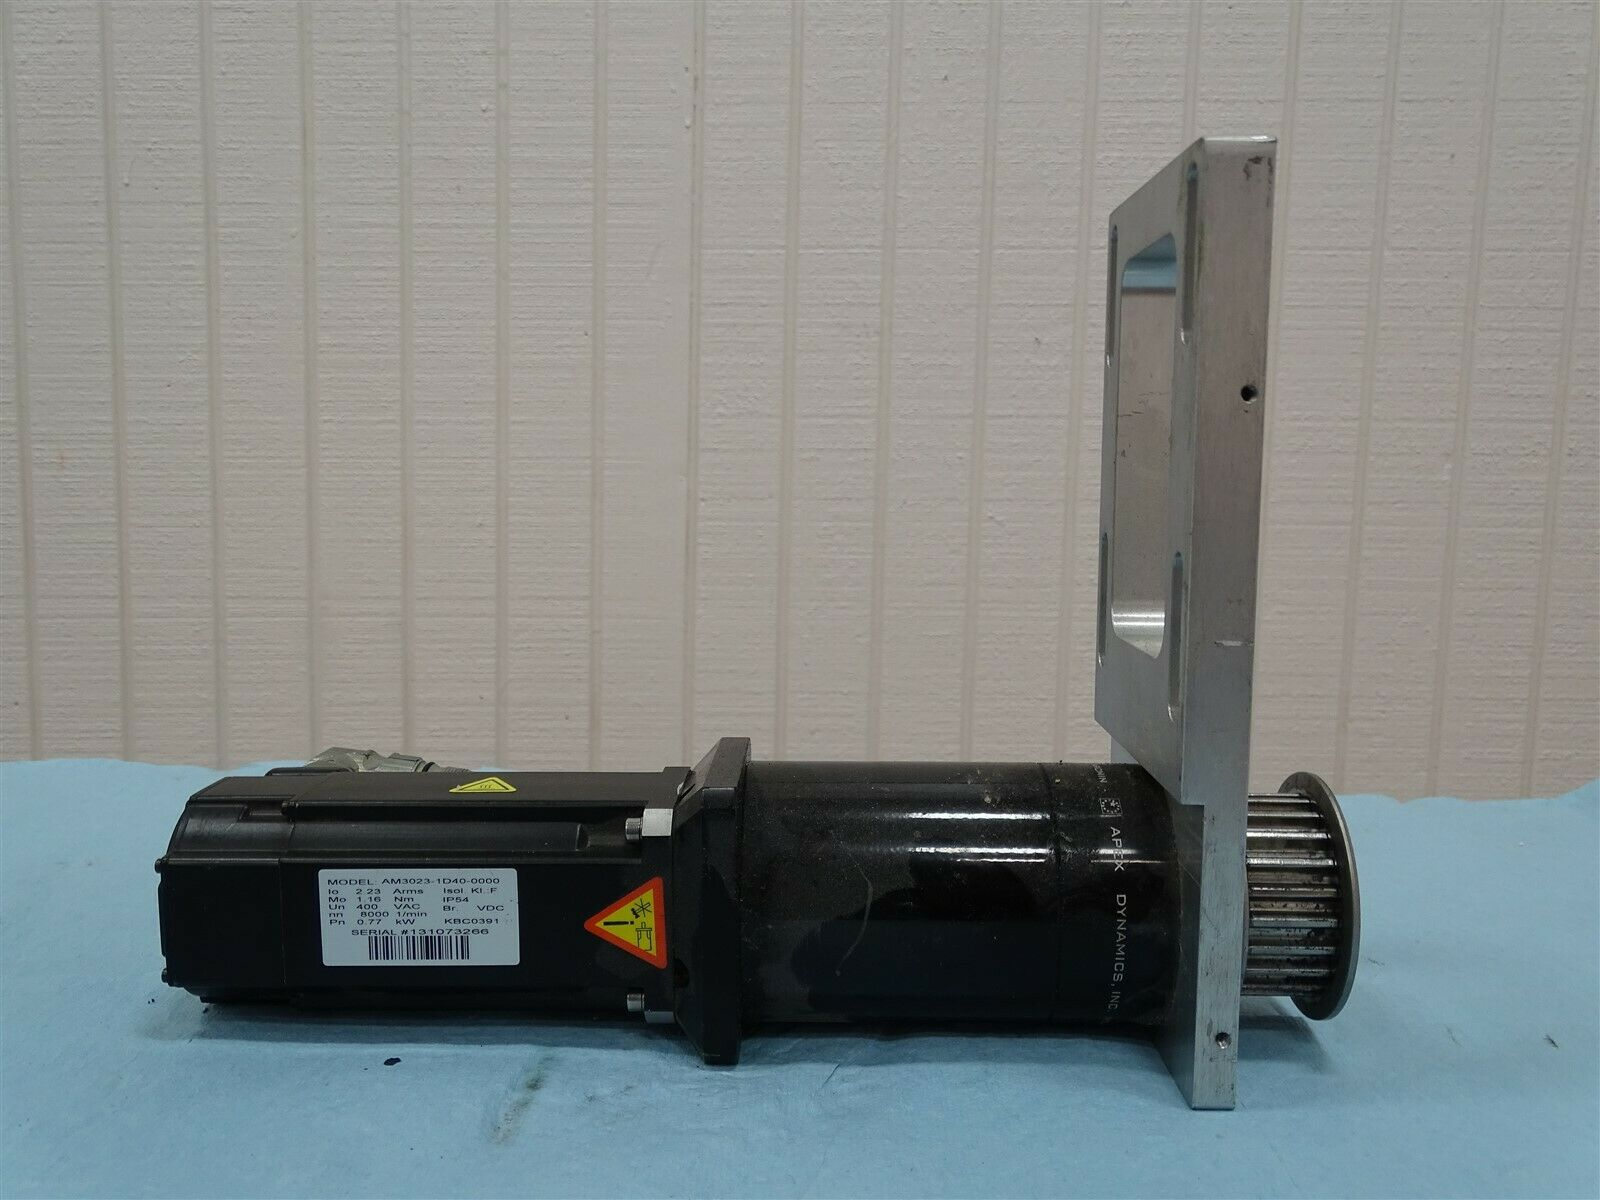 Beckhoff AM3023-1D40-0000 Servo Motor w/Apex Dynamics Reducer 20:1 Ratio